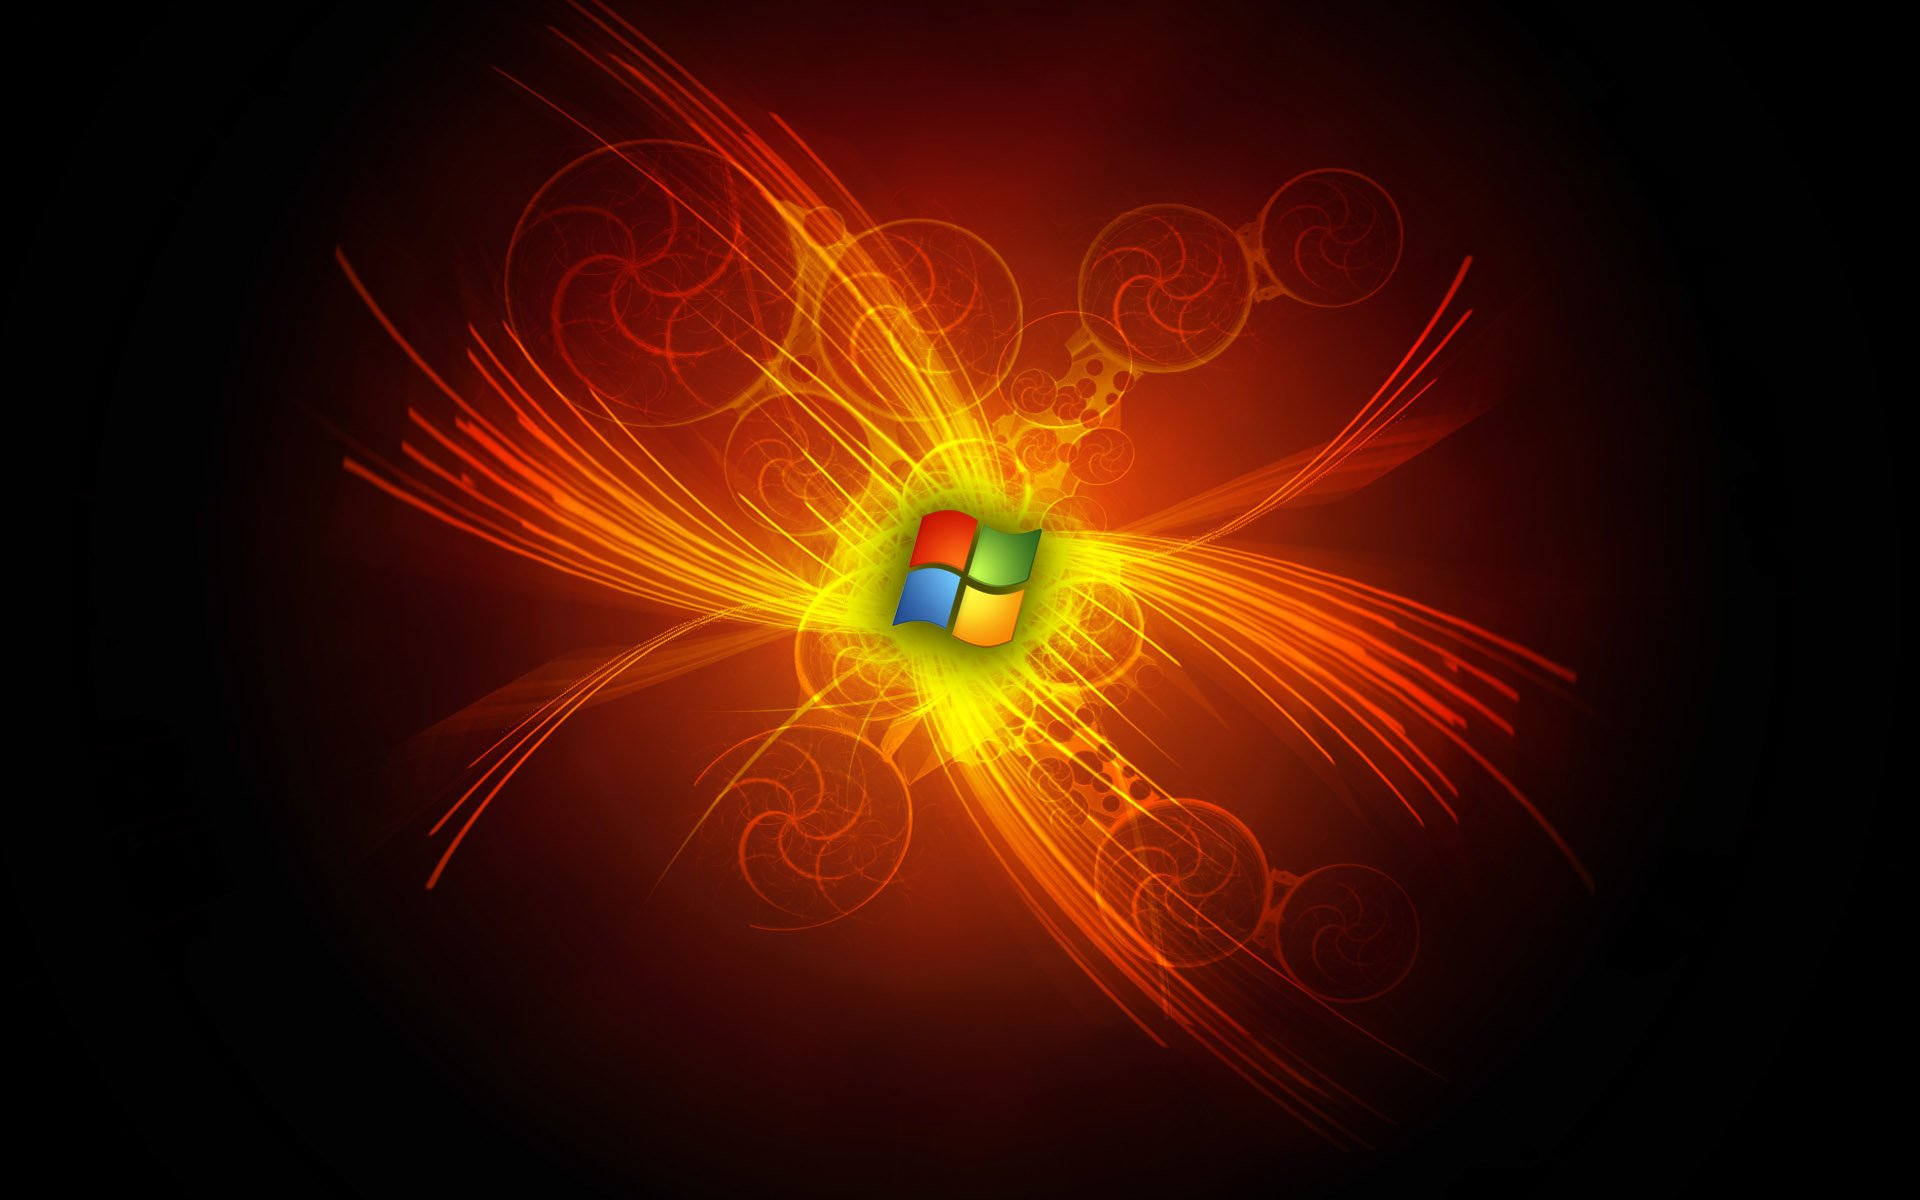 Technologie - Windows  Abstrait Microsoft Logo Windows 7 Feu Flamme Fond d'écran